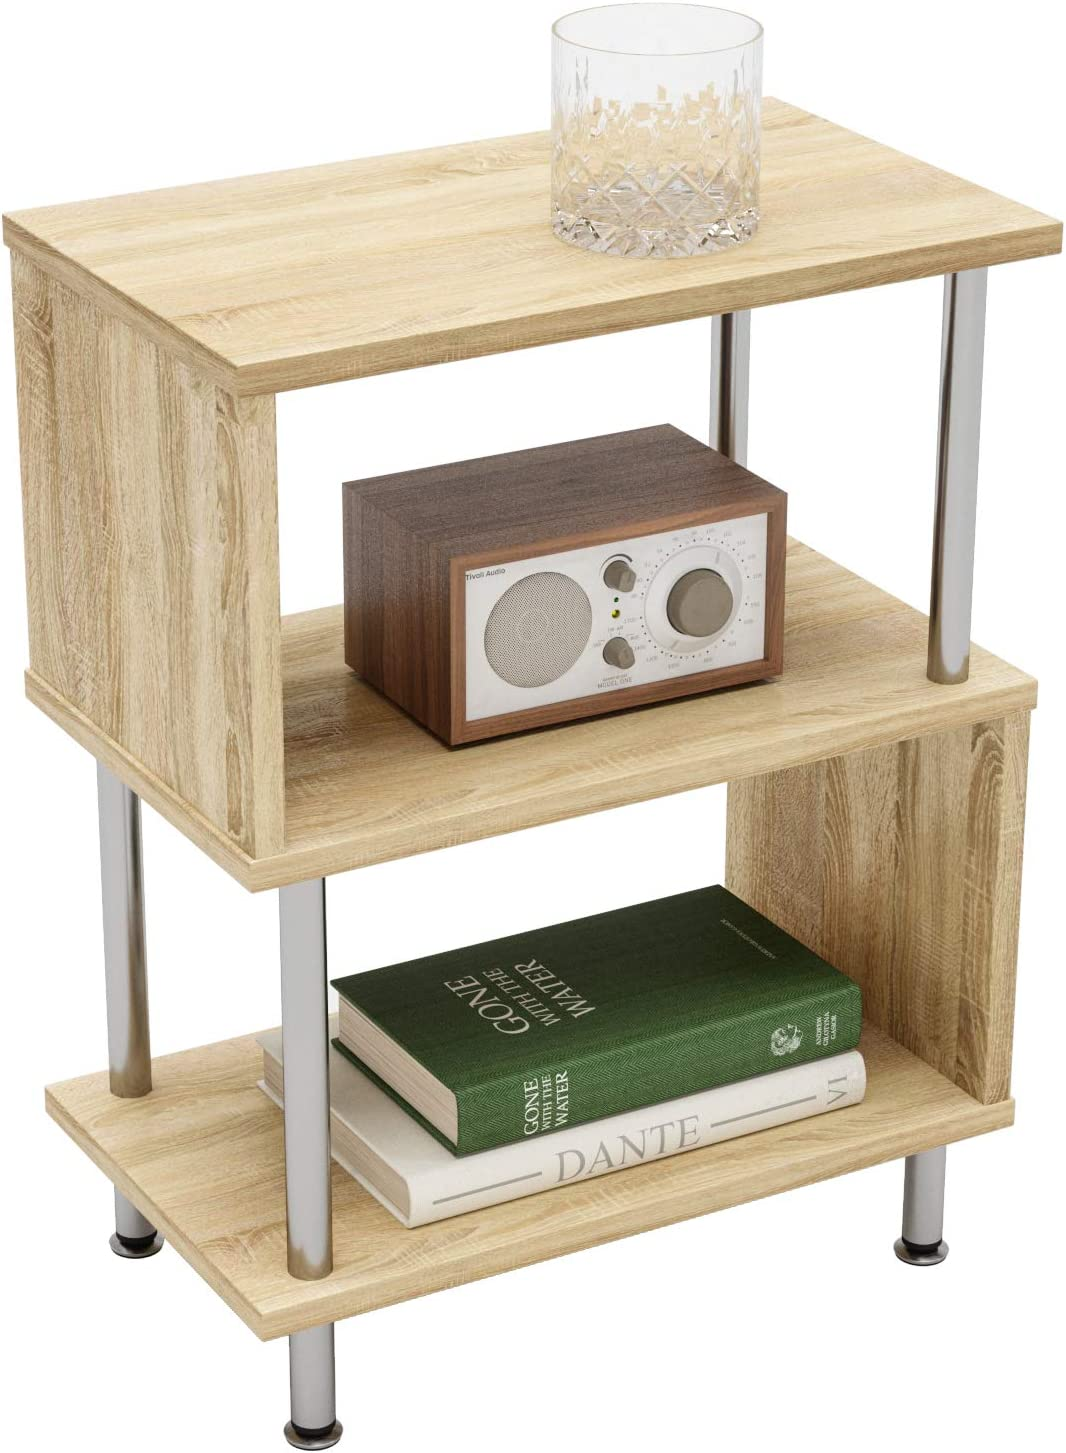 Amazon Com Bestier Side Table 3 Tier S Shaped Small Nightstand Bedside Table End Table With Storage Shelves For Bedroom Sofa Table Coffee Table Modern Design Easy Assemble And Sturdy Kitchen Dining